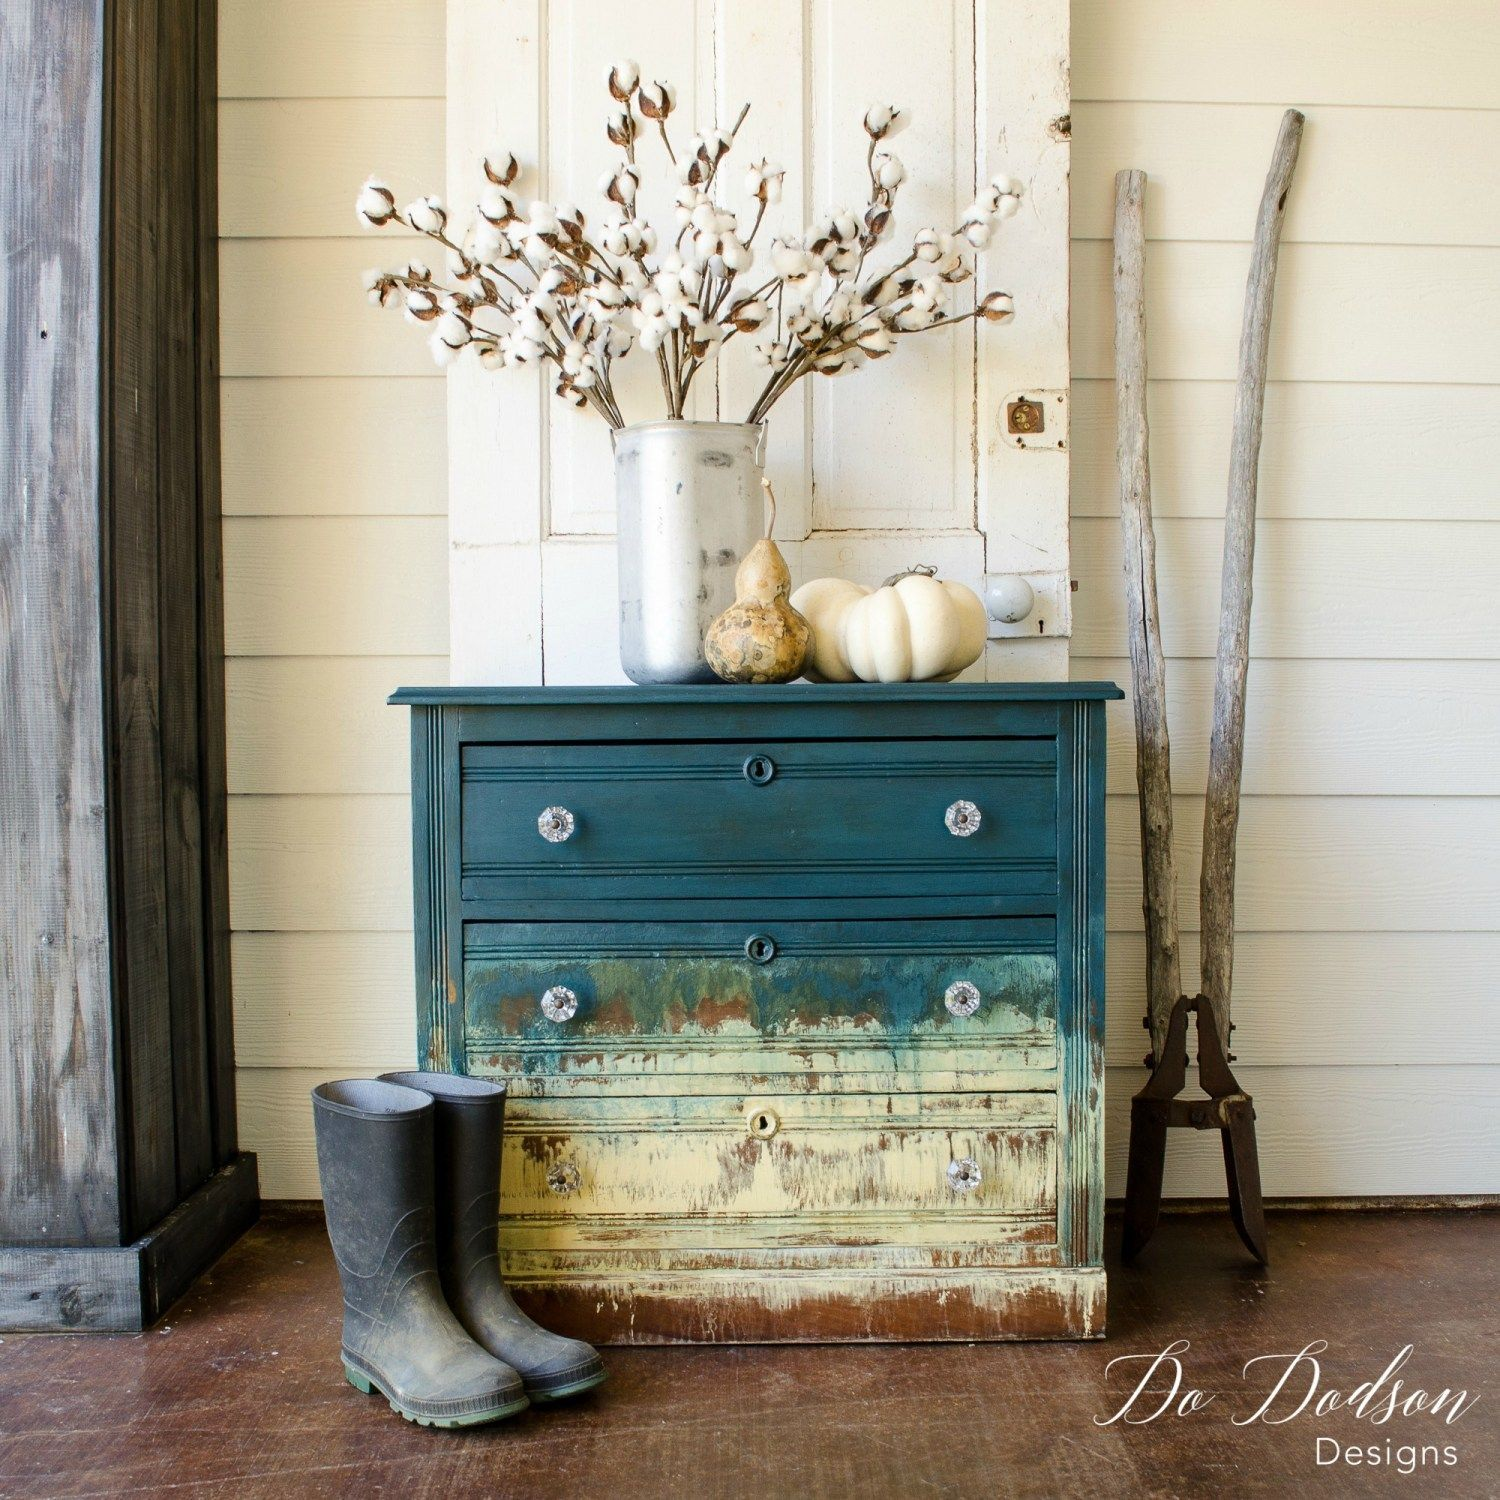 Amazing Hand Painted Furniture That Will Blow Your Mind #Dododsondesigns